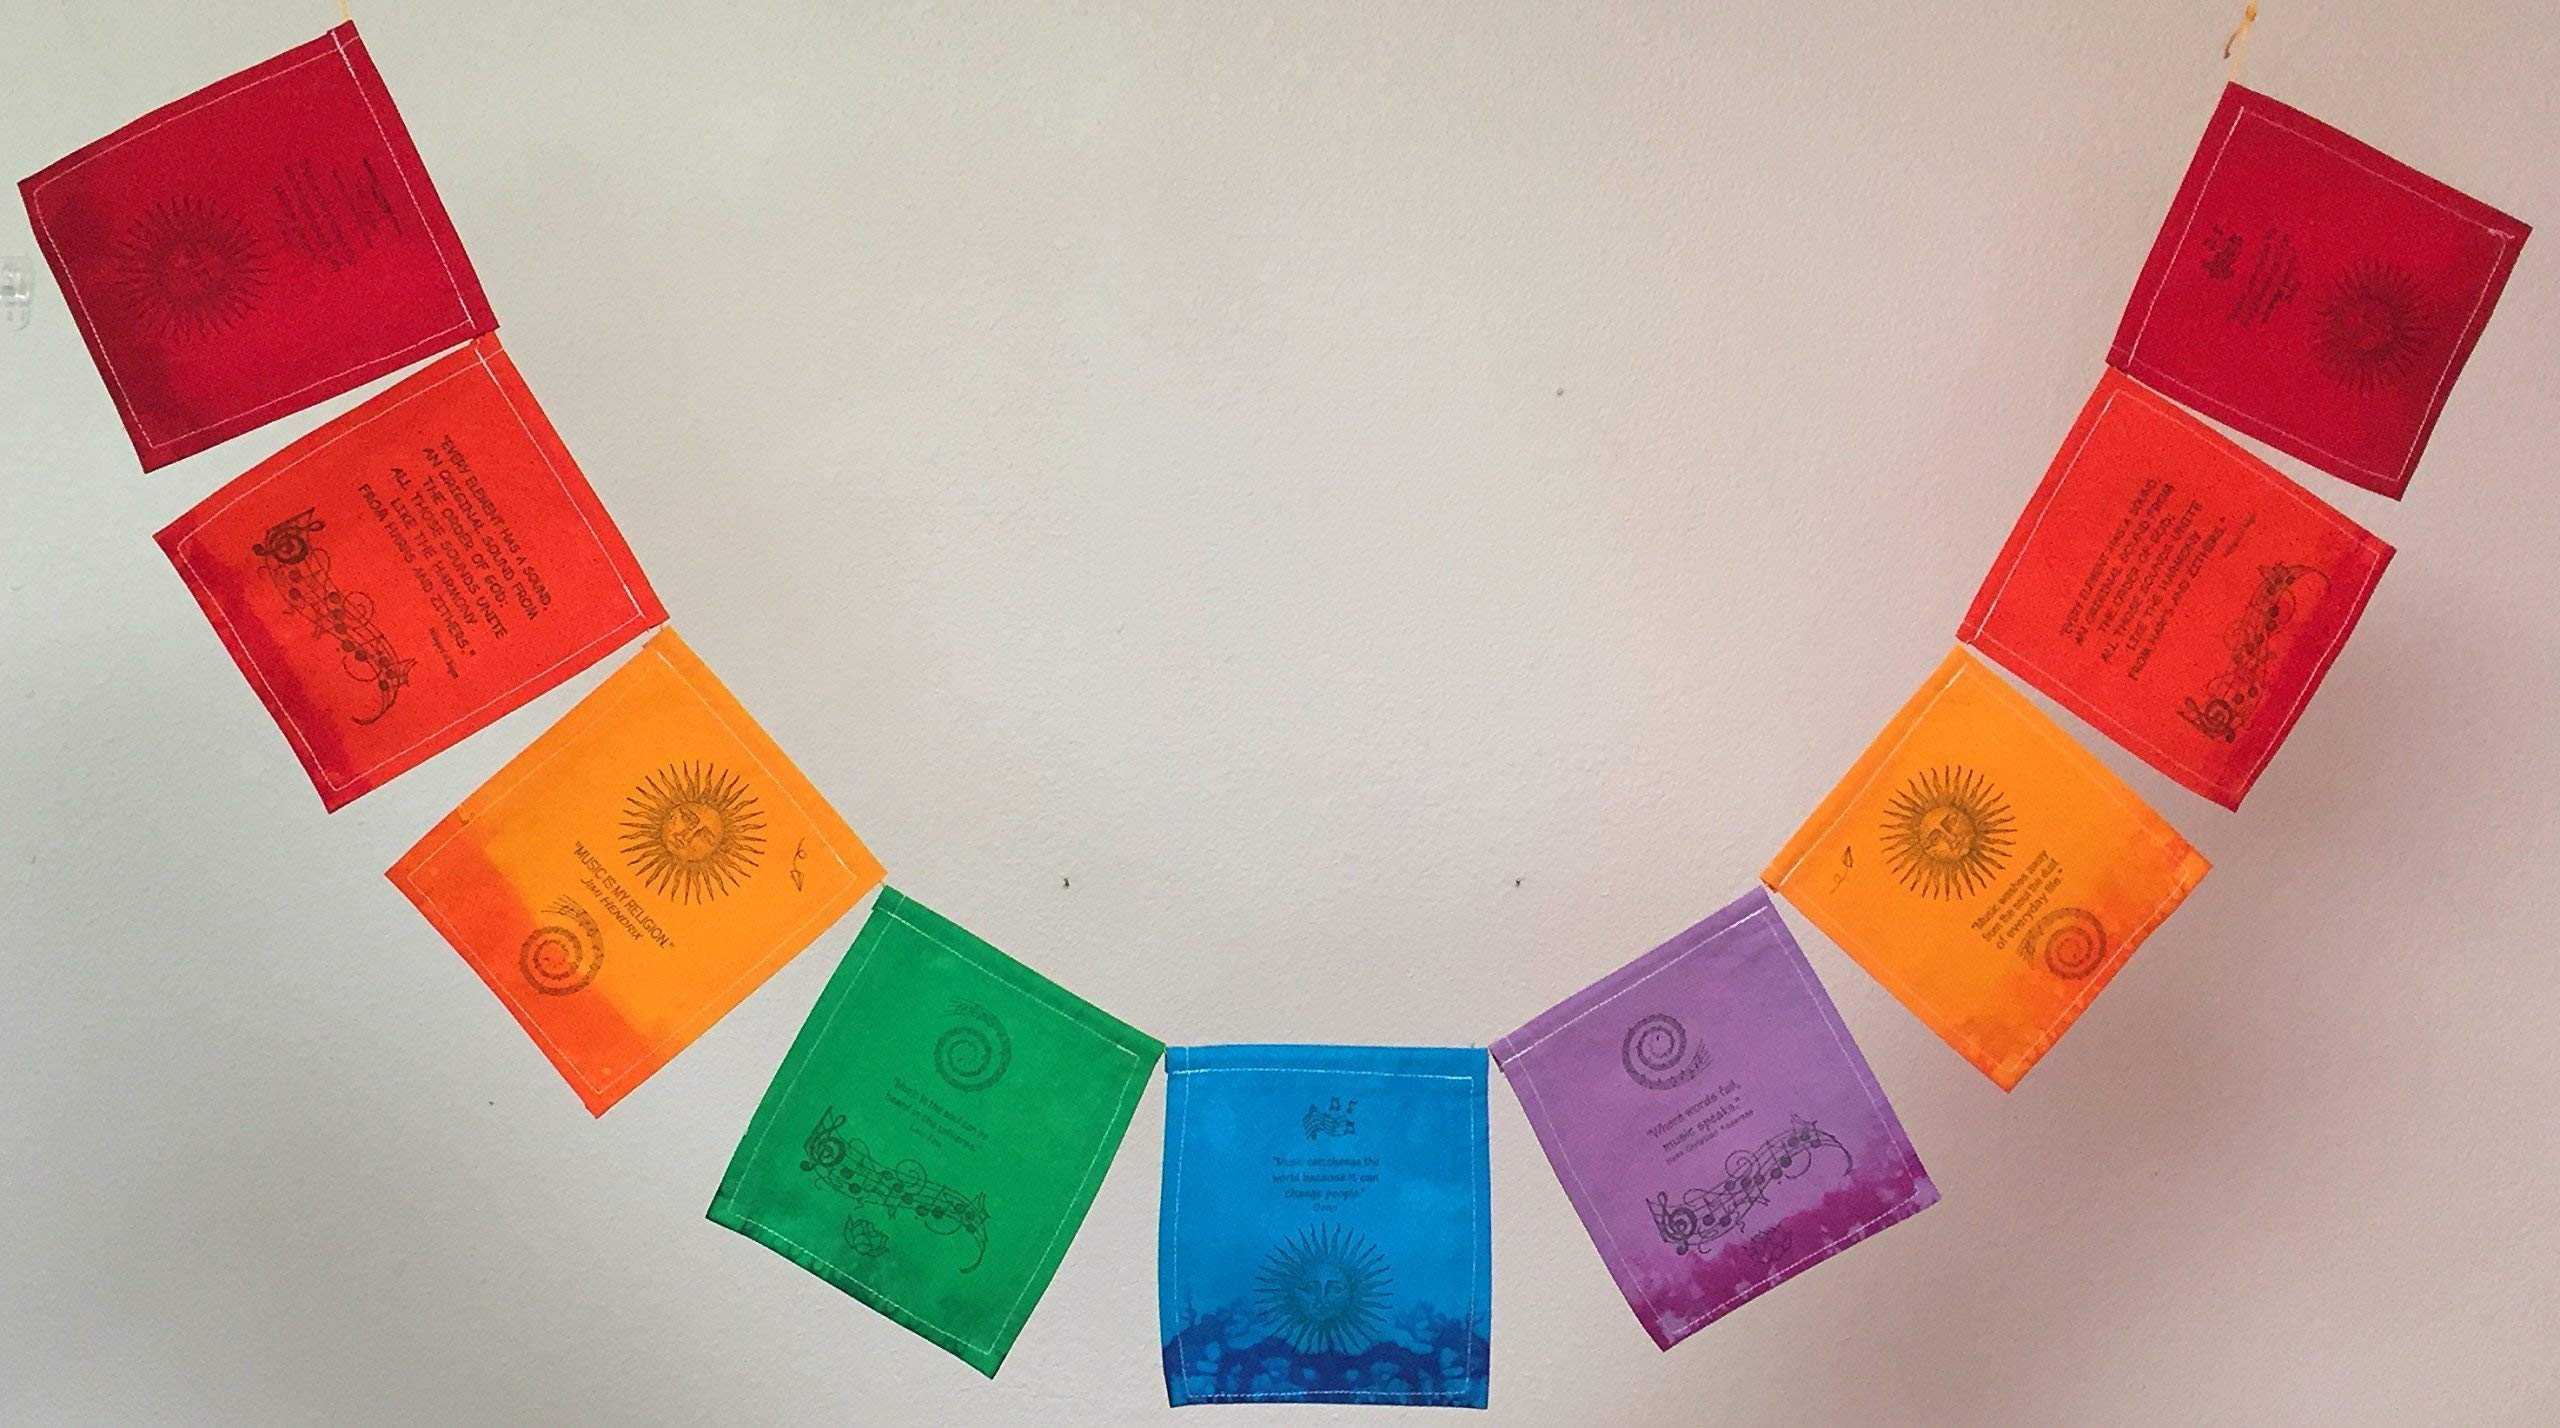 Music Prayer Flag, for those who love and are inspired by music. All proceeds to families in Mexico.